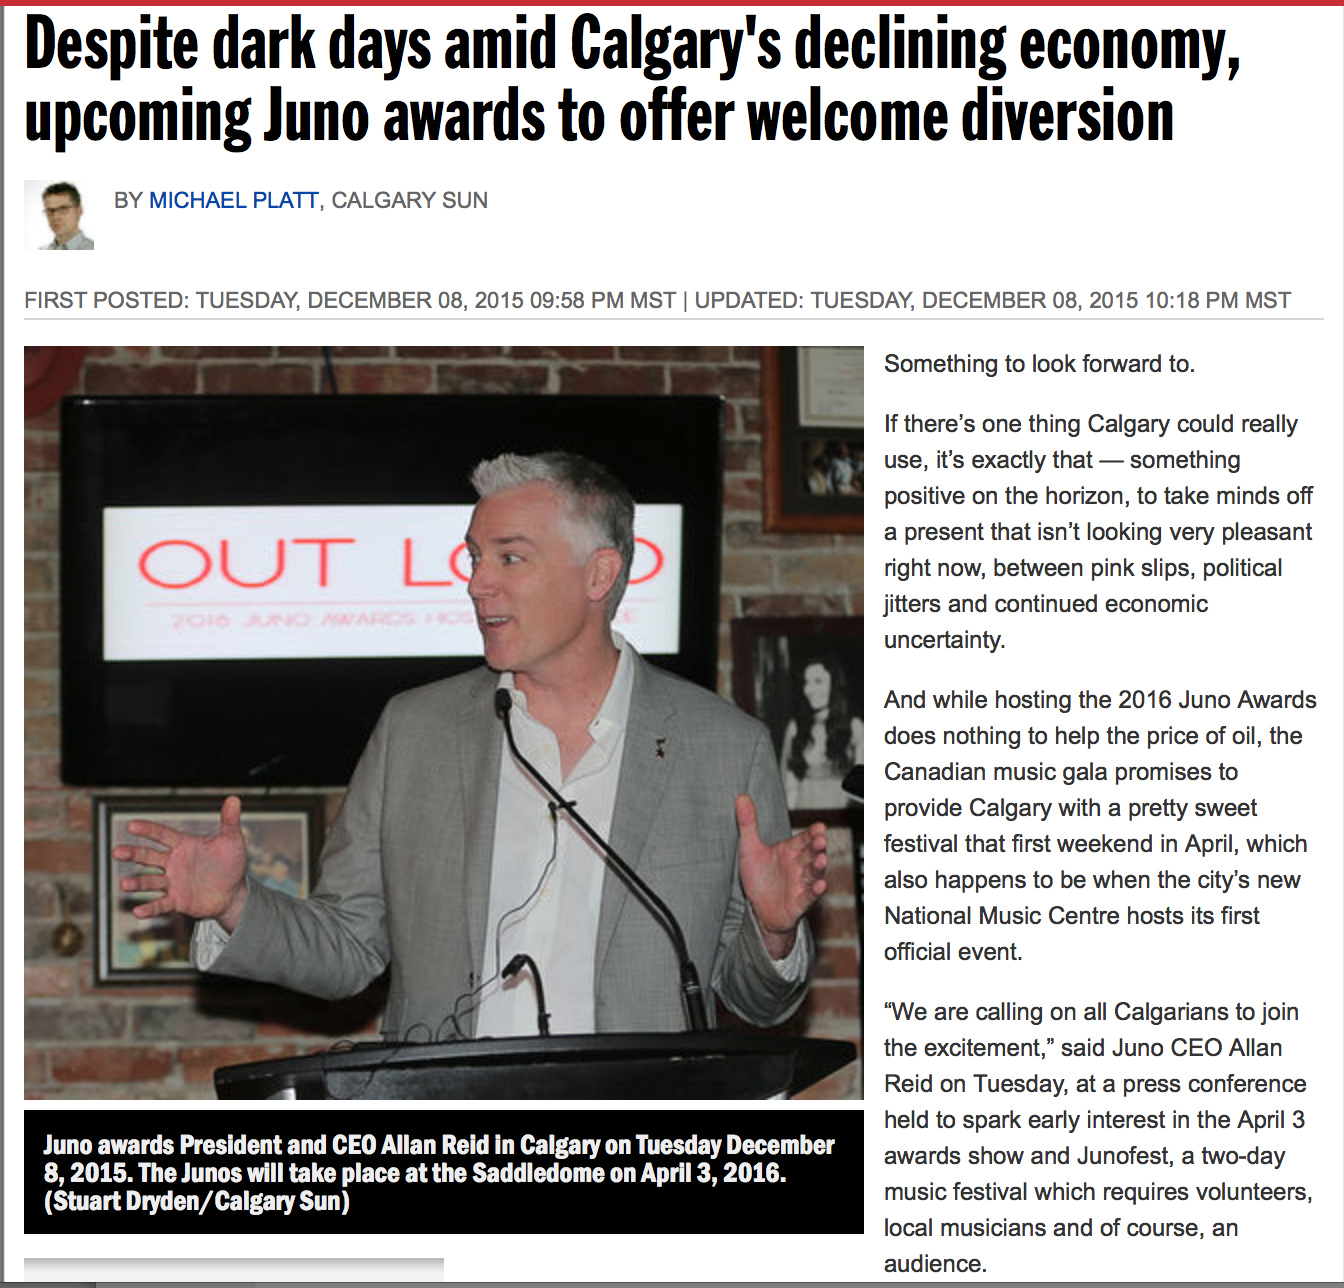 http://www.calgarysun.com/2015/12/09/despite-dark-days-amid-calgarys-declining-economy-upcoming-juno-awards-to-offer-welcome-diversion